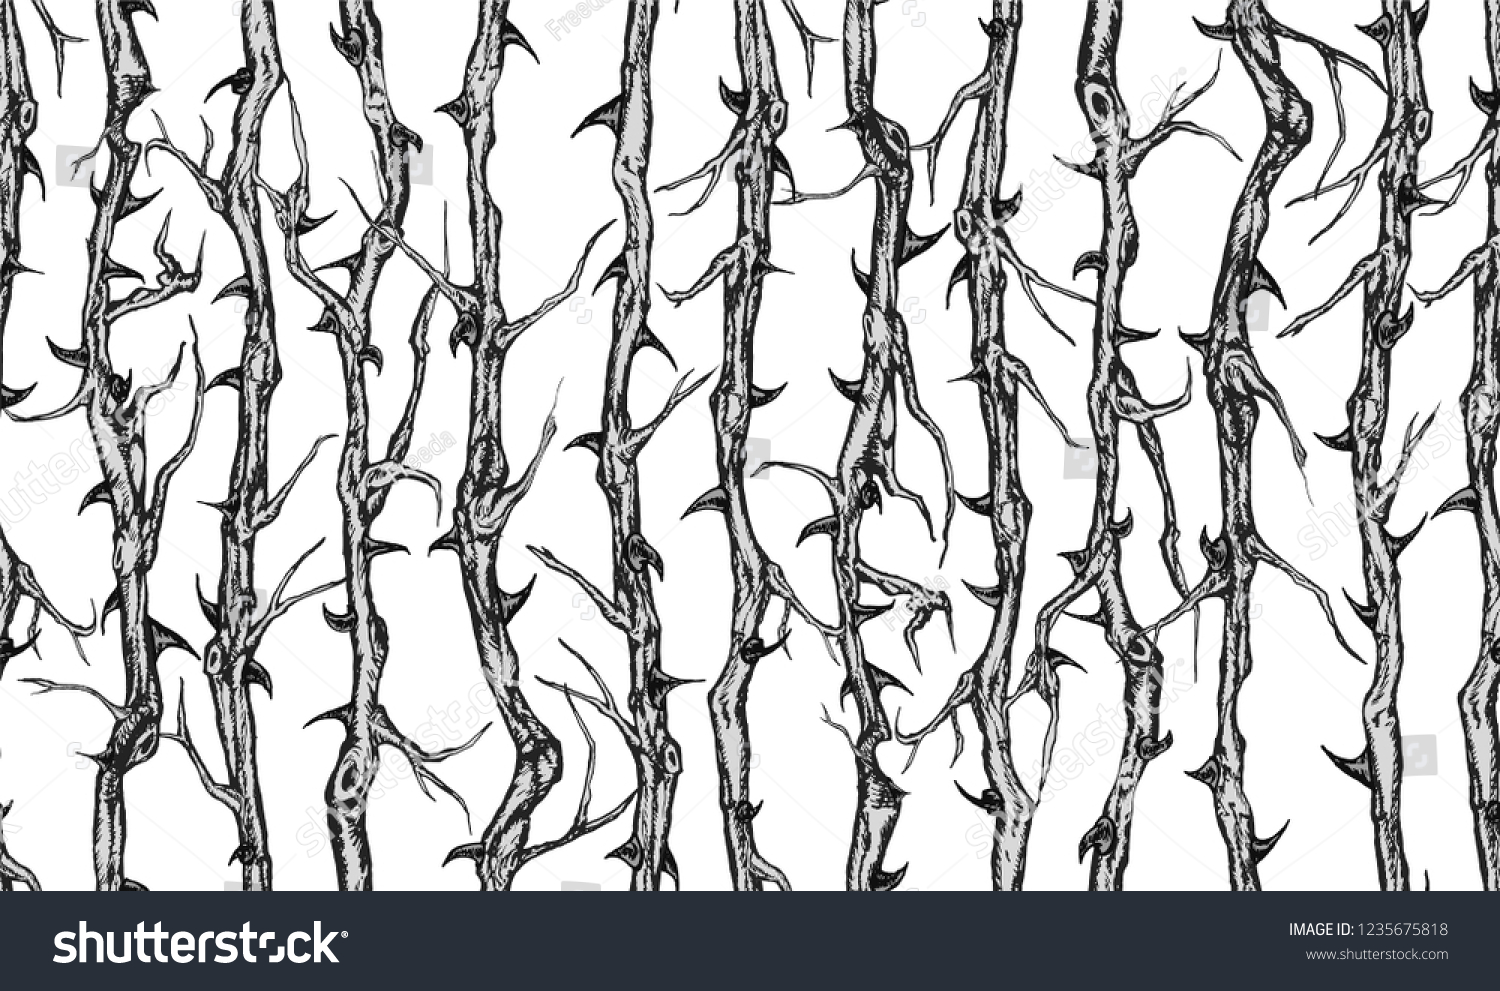 Hand drawn vector seamless pattern of briar patch with stems and thorns.